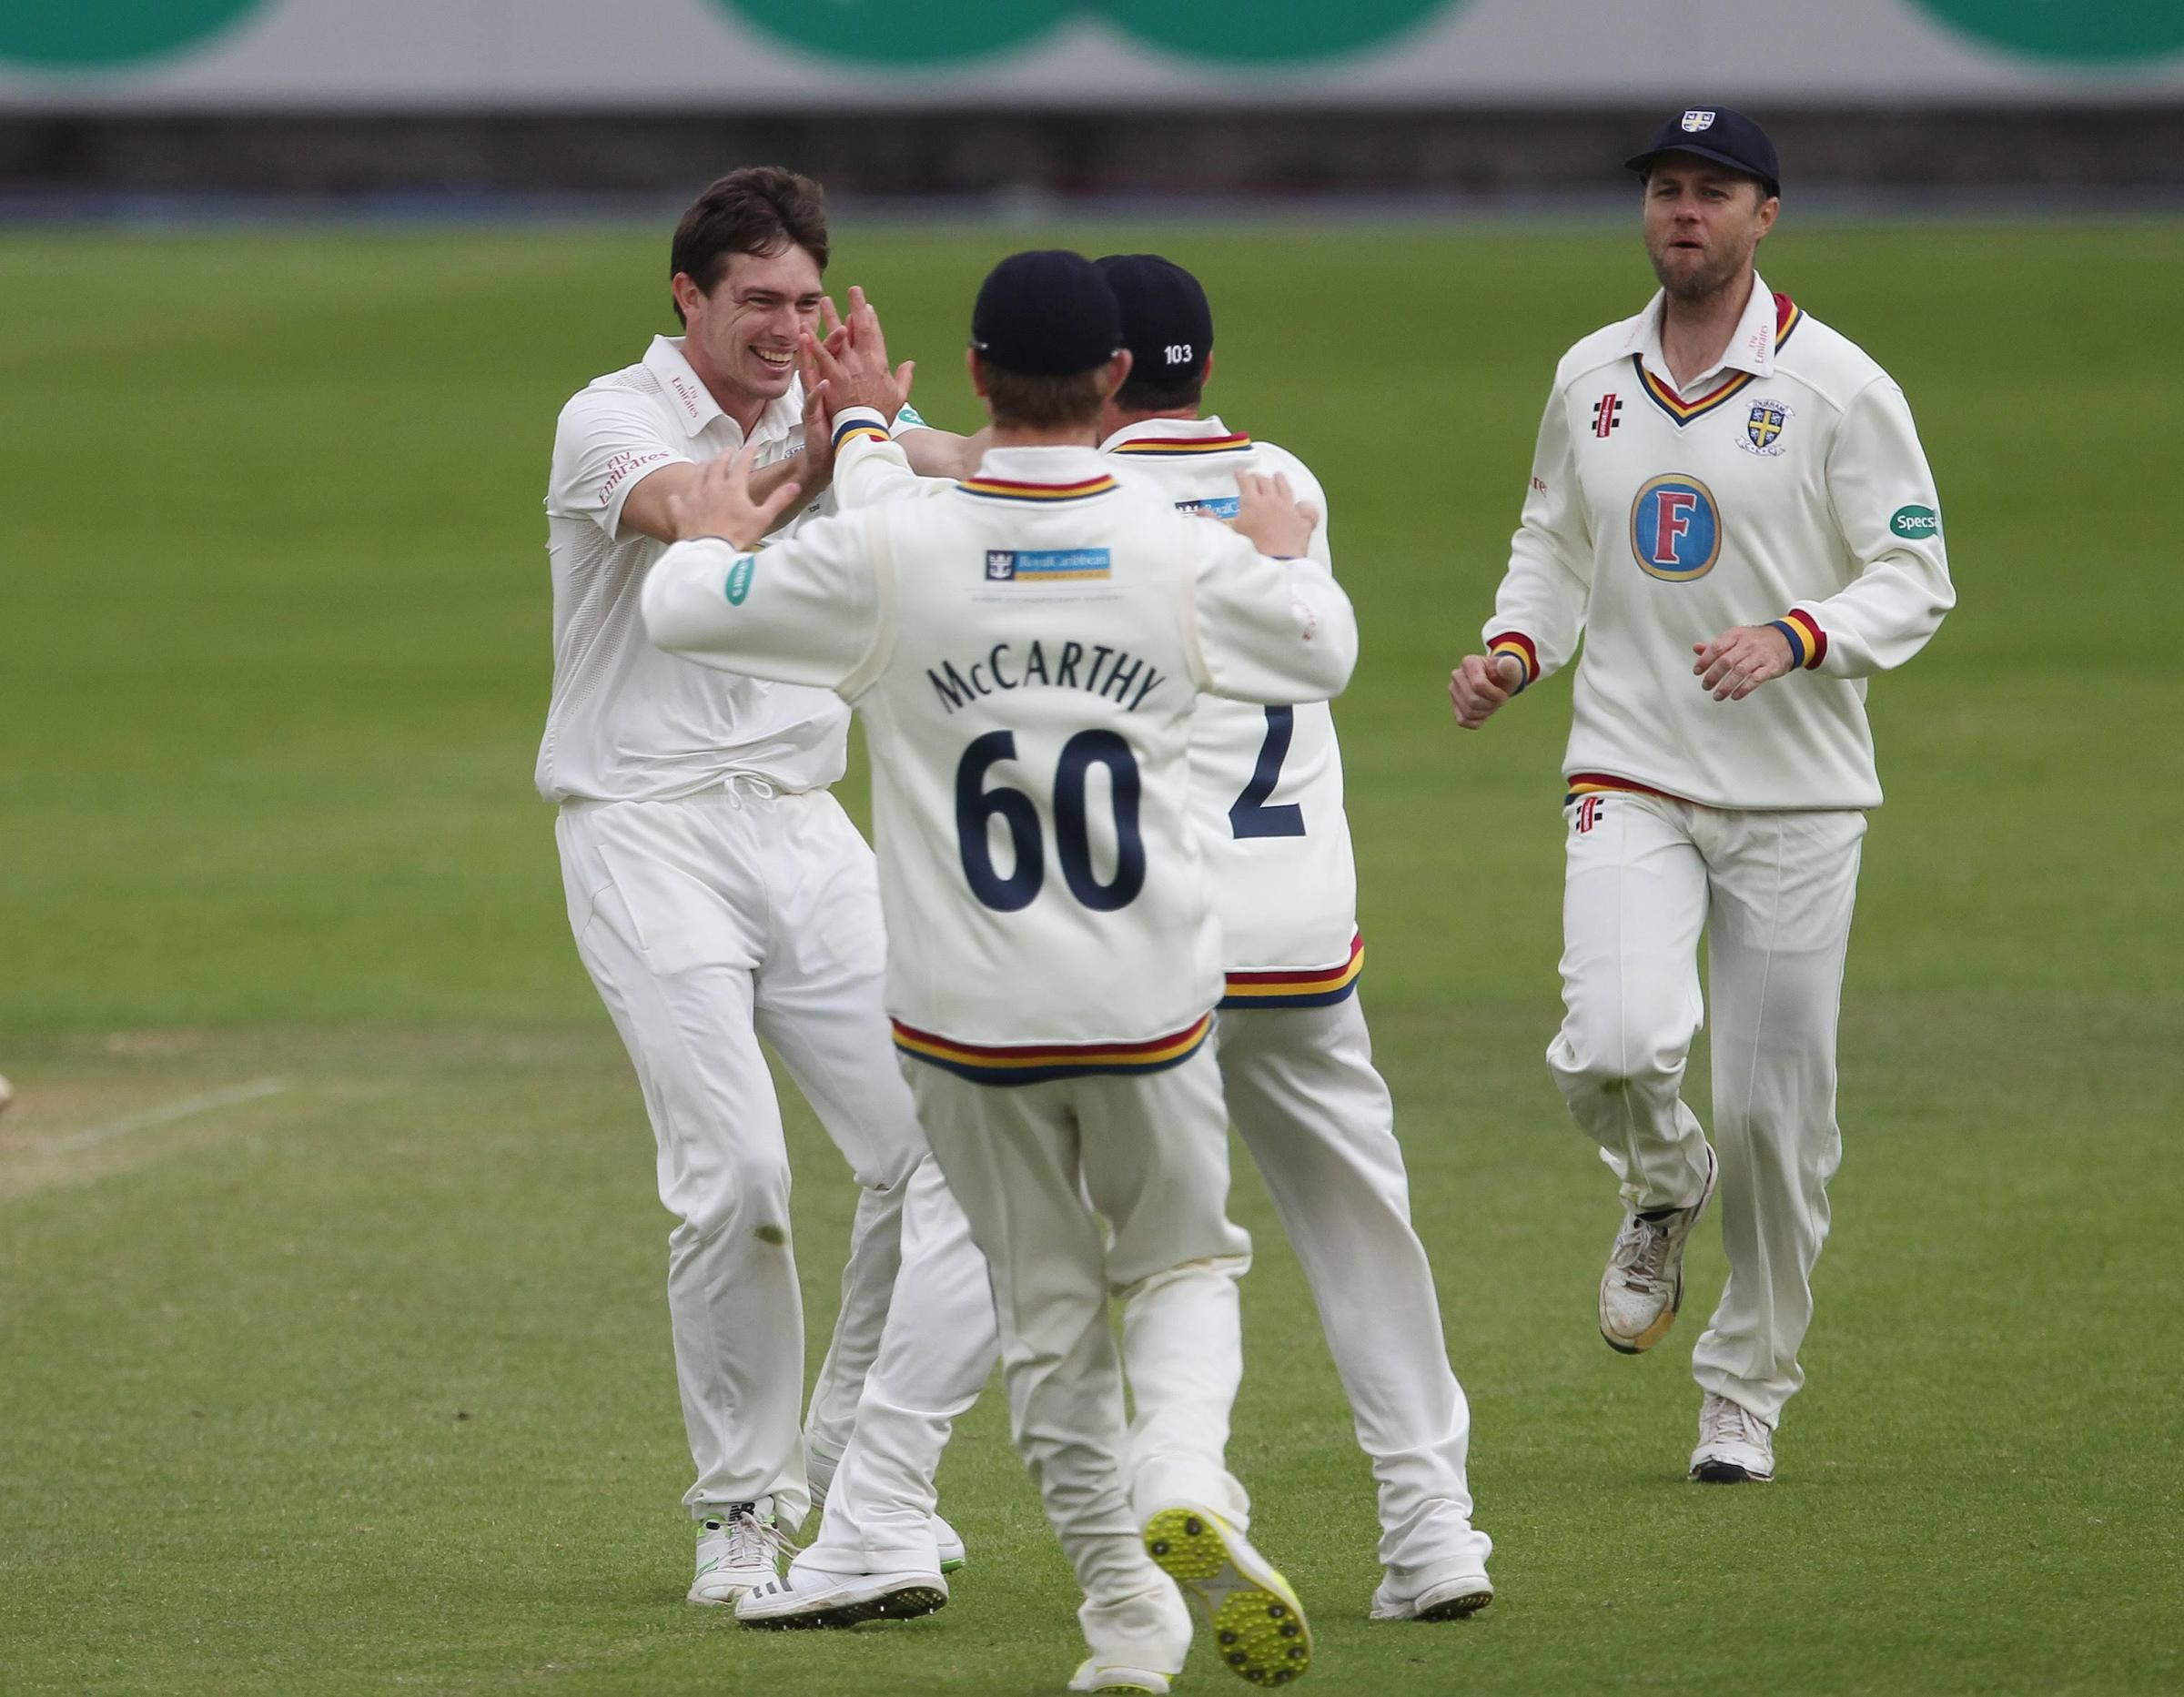 Durham's Matt Salisbury celebrates with his team mates after claiming the wicket of Wayne Madsen during the third day of the Specsavers County Championship match between Durham County Cricket Club and Derbyshire County Cricket Club at Emirates Riversi